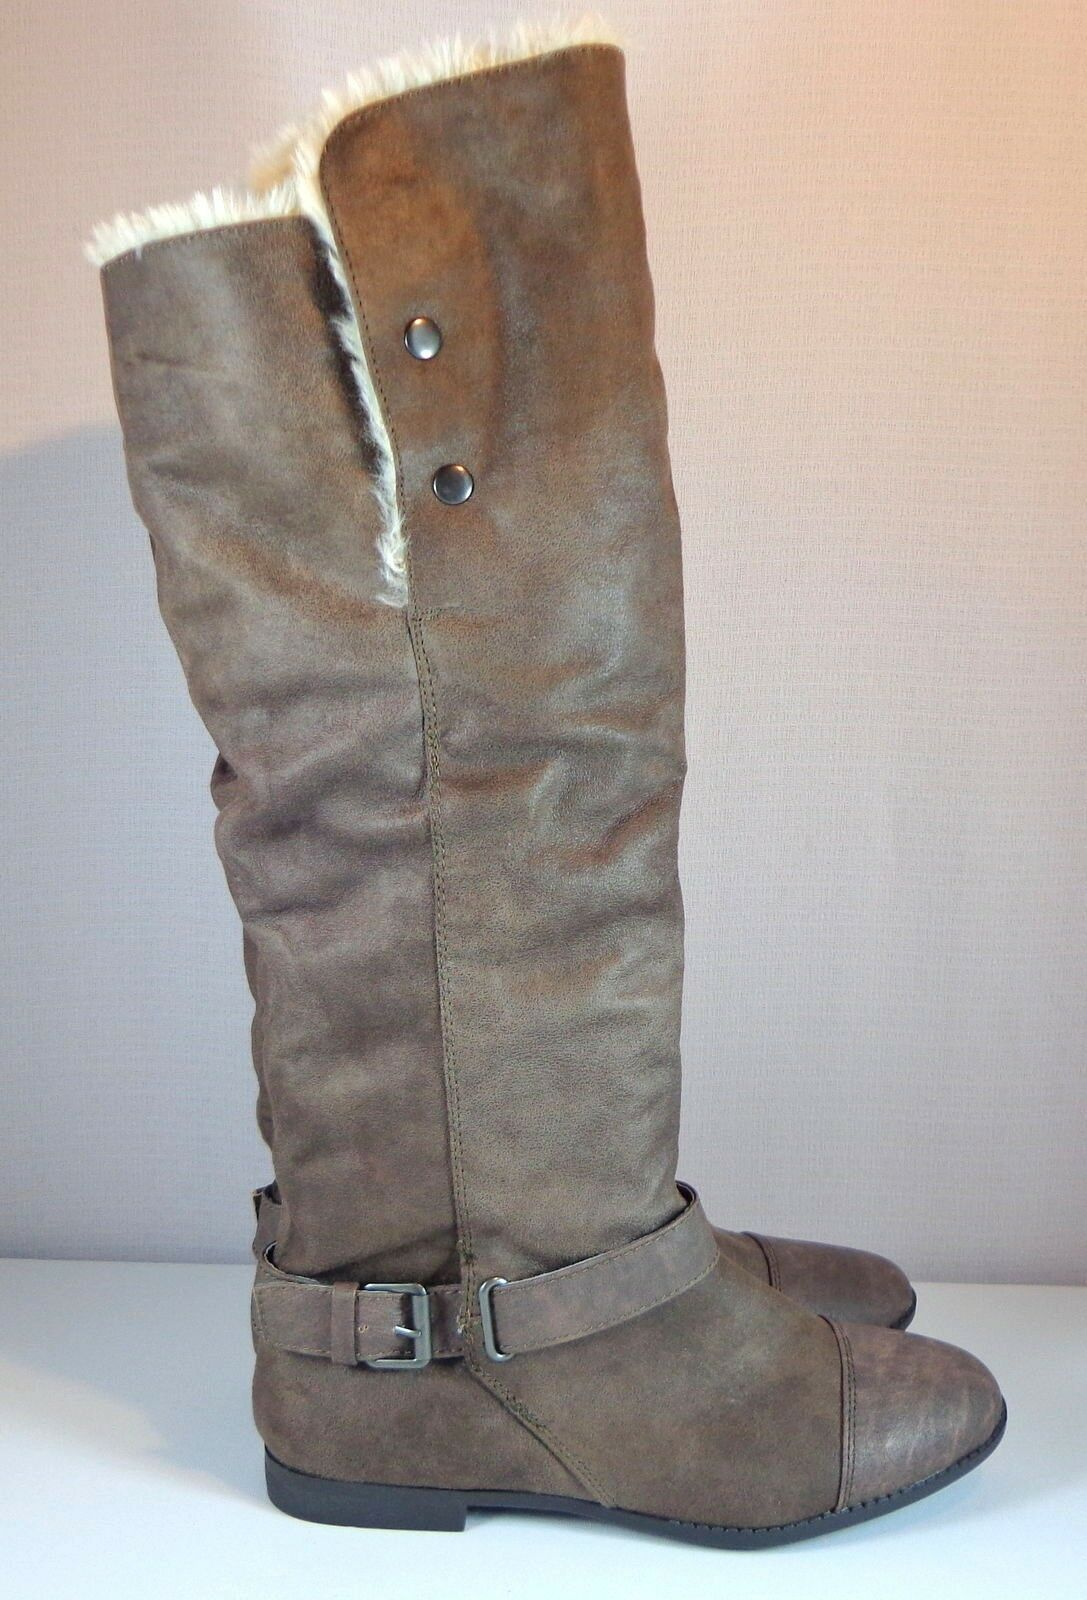 Womens Report Knee High Boots Size 11 M Brown Faux Leather   Fur Fold Over Cuff